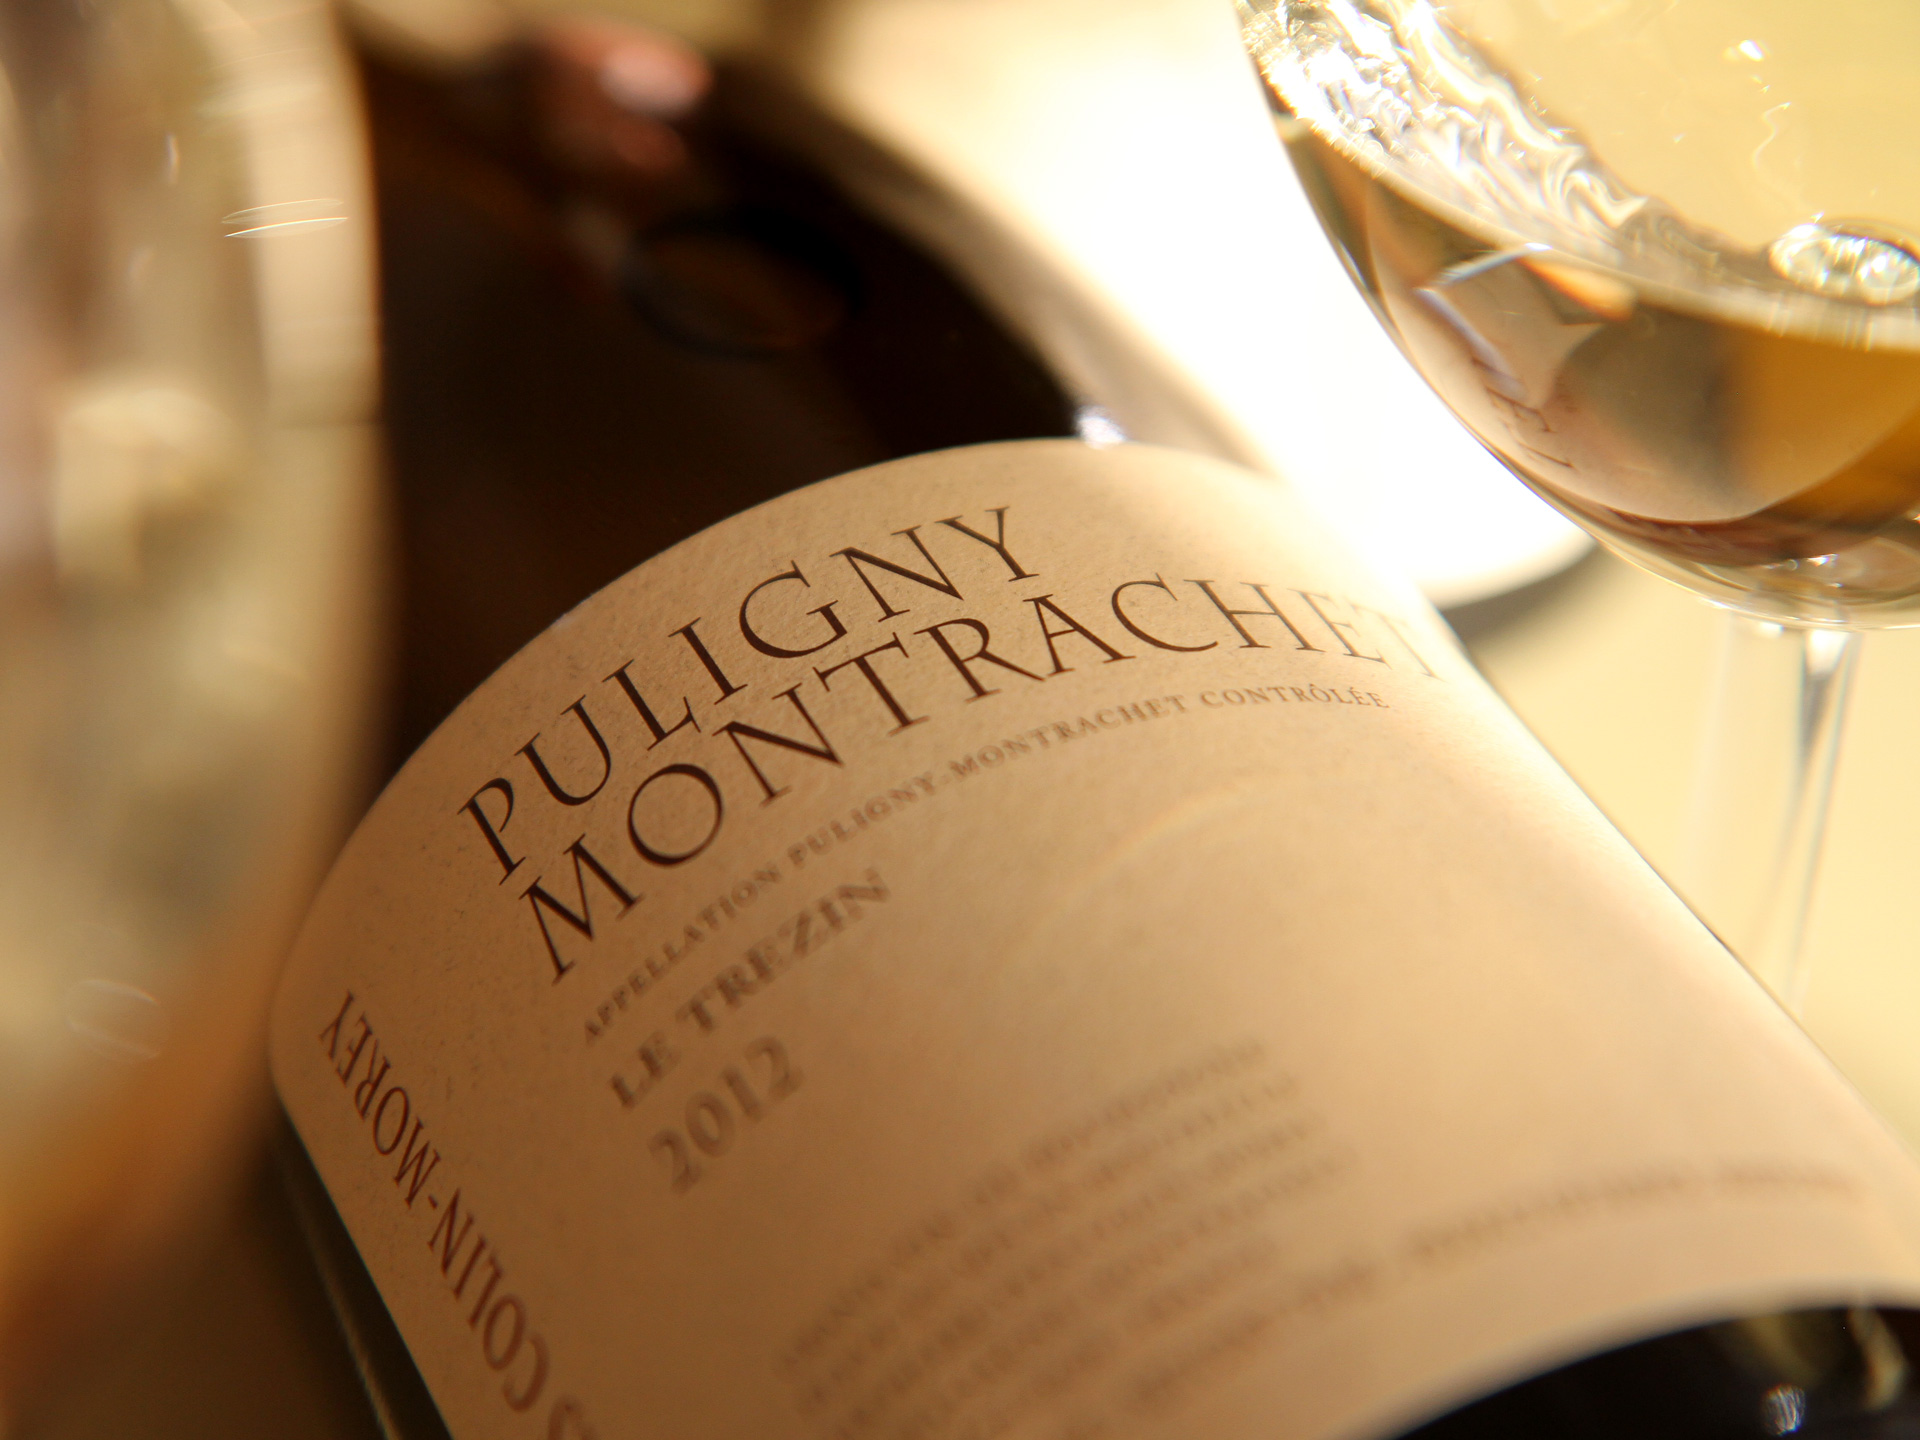 Puligny Montrachet pierre-yves-colin-morey wine photography